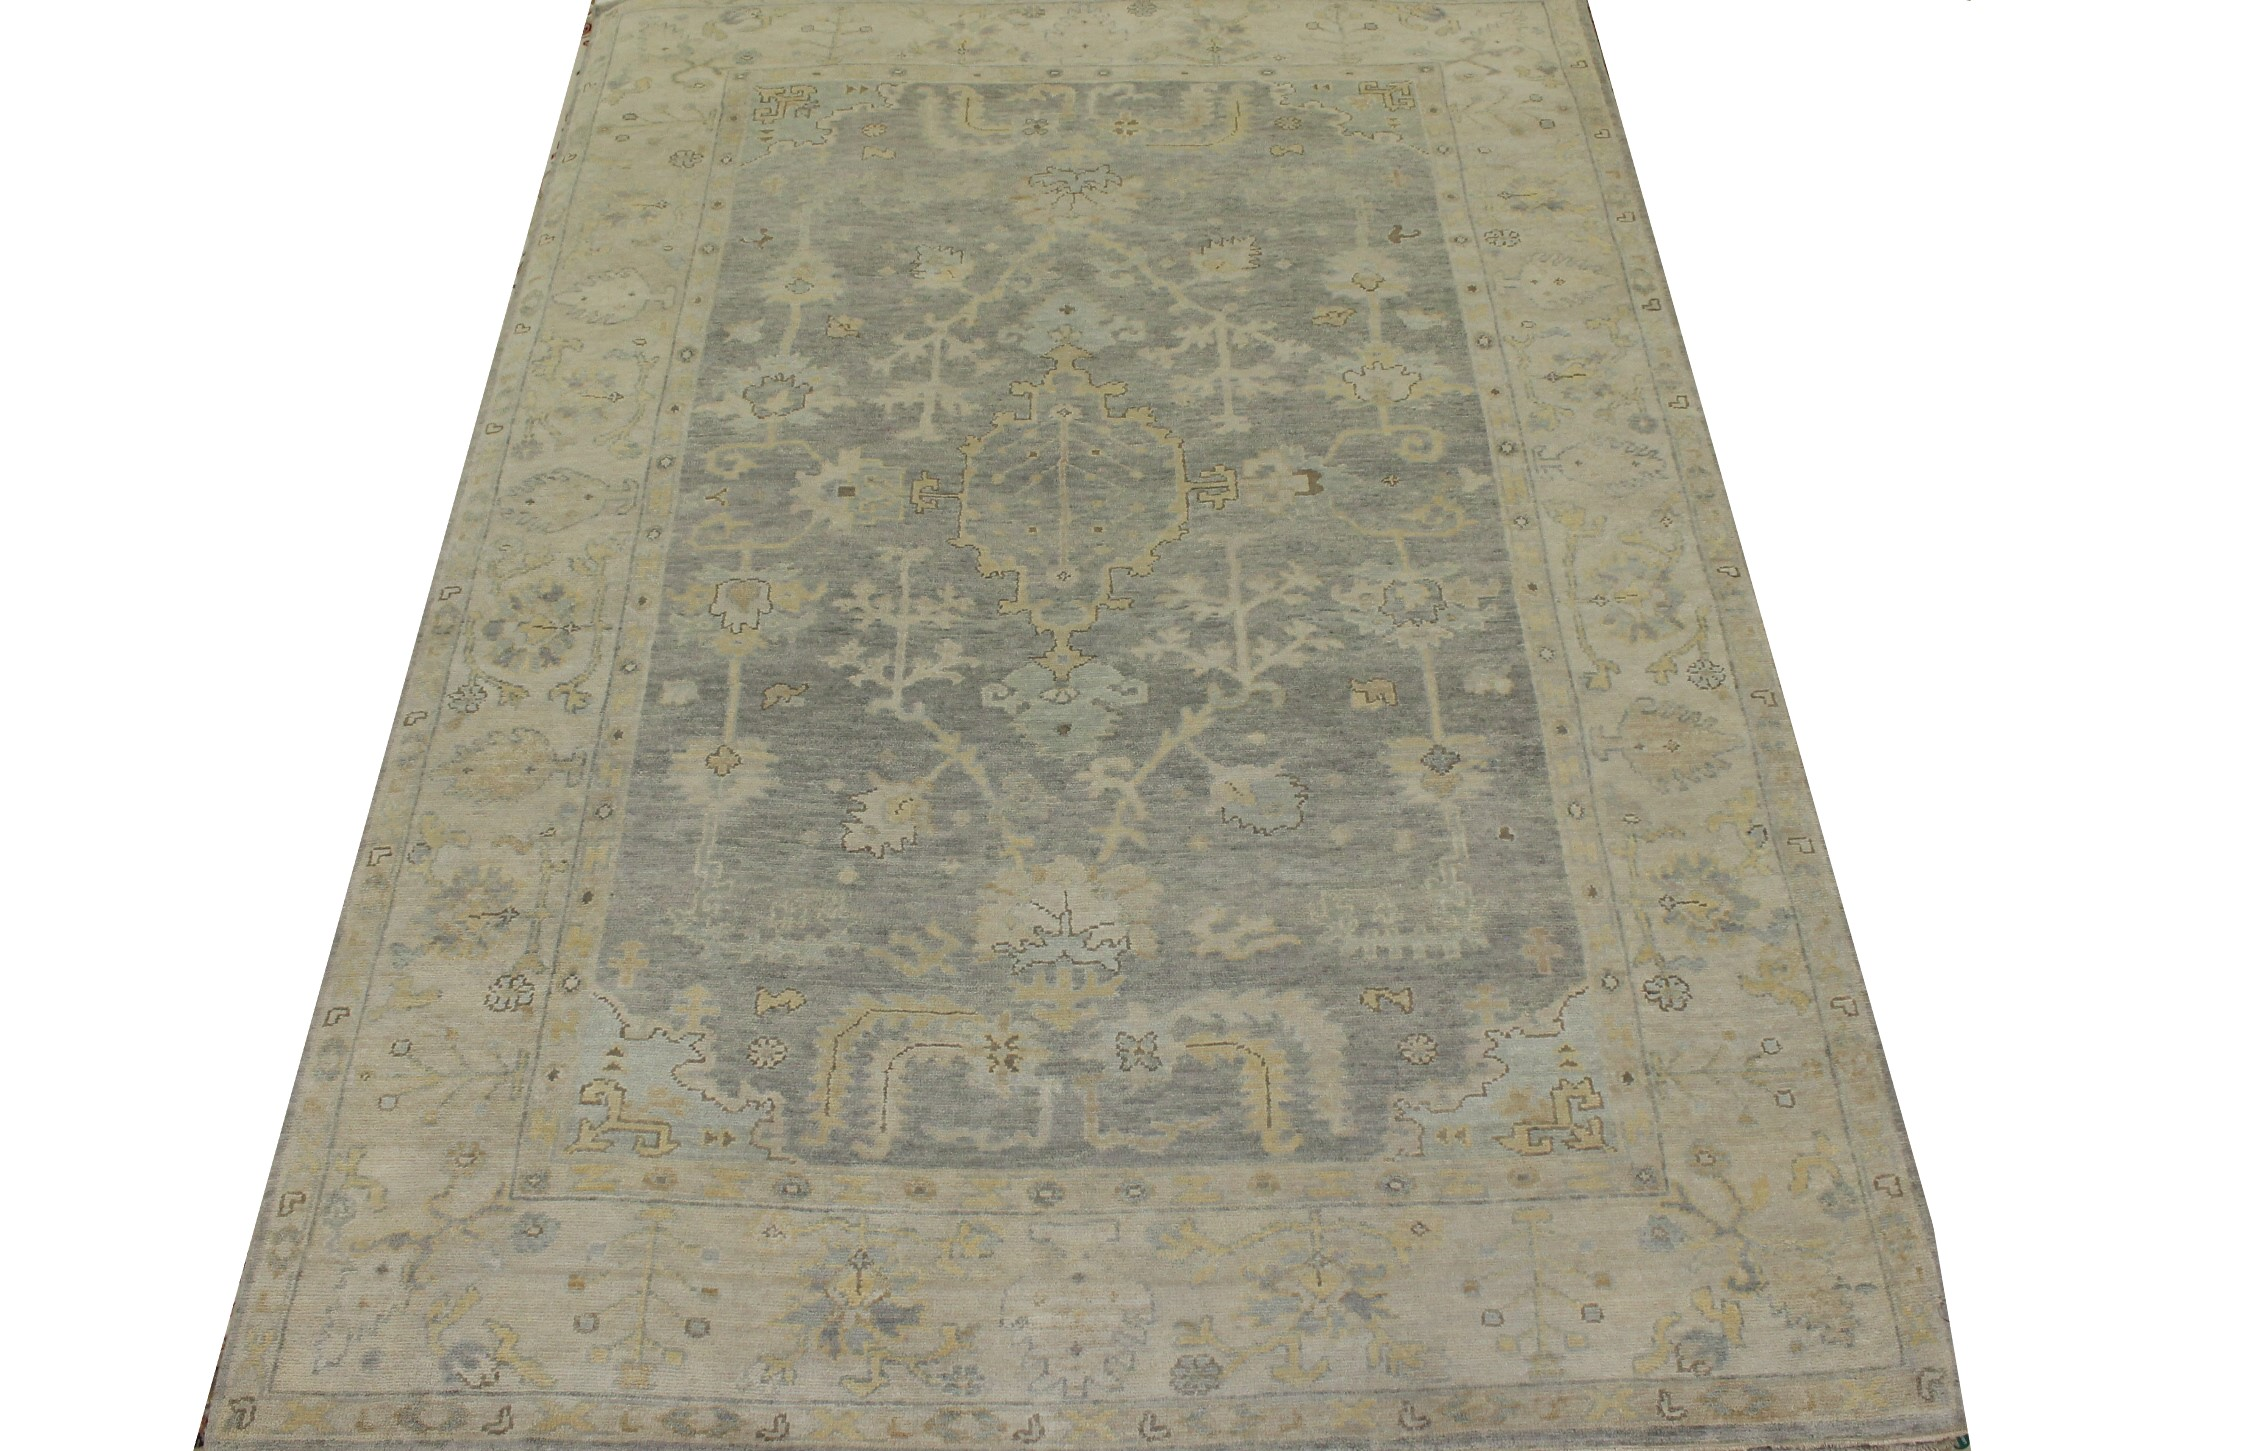 6x9 Oushak Hand Knotted Wool Area Rug - MR023422